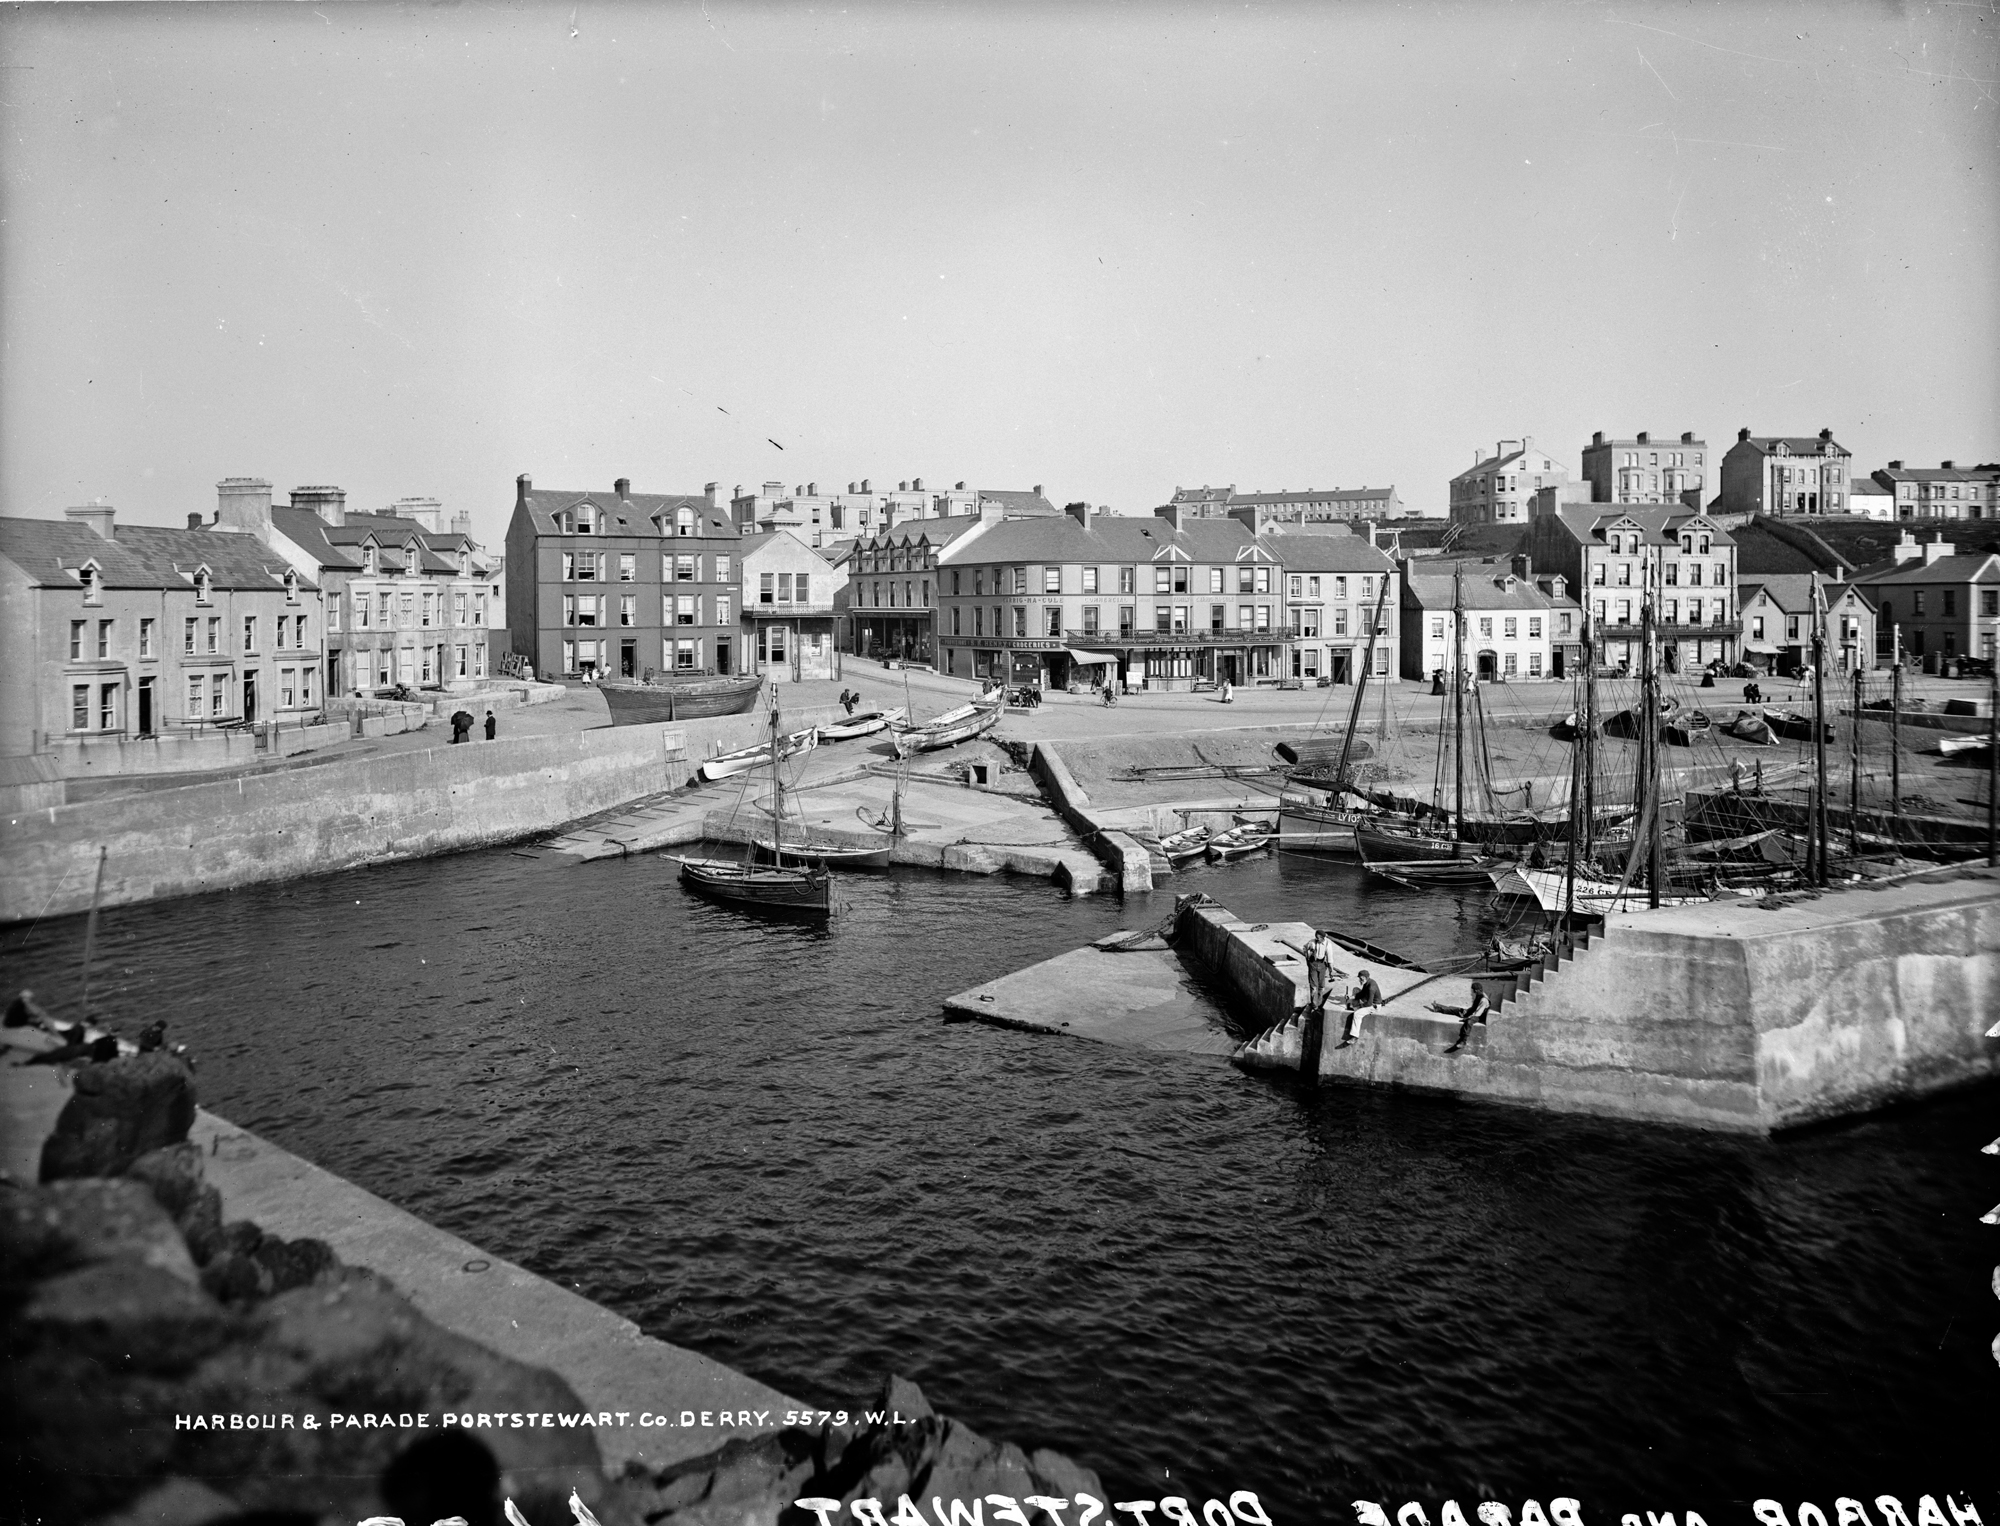 Harbour & Parade, Portstewart, Co. Derry